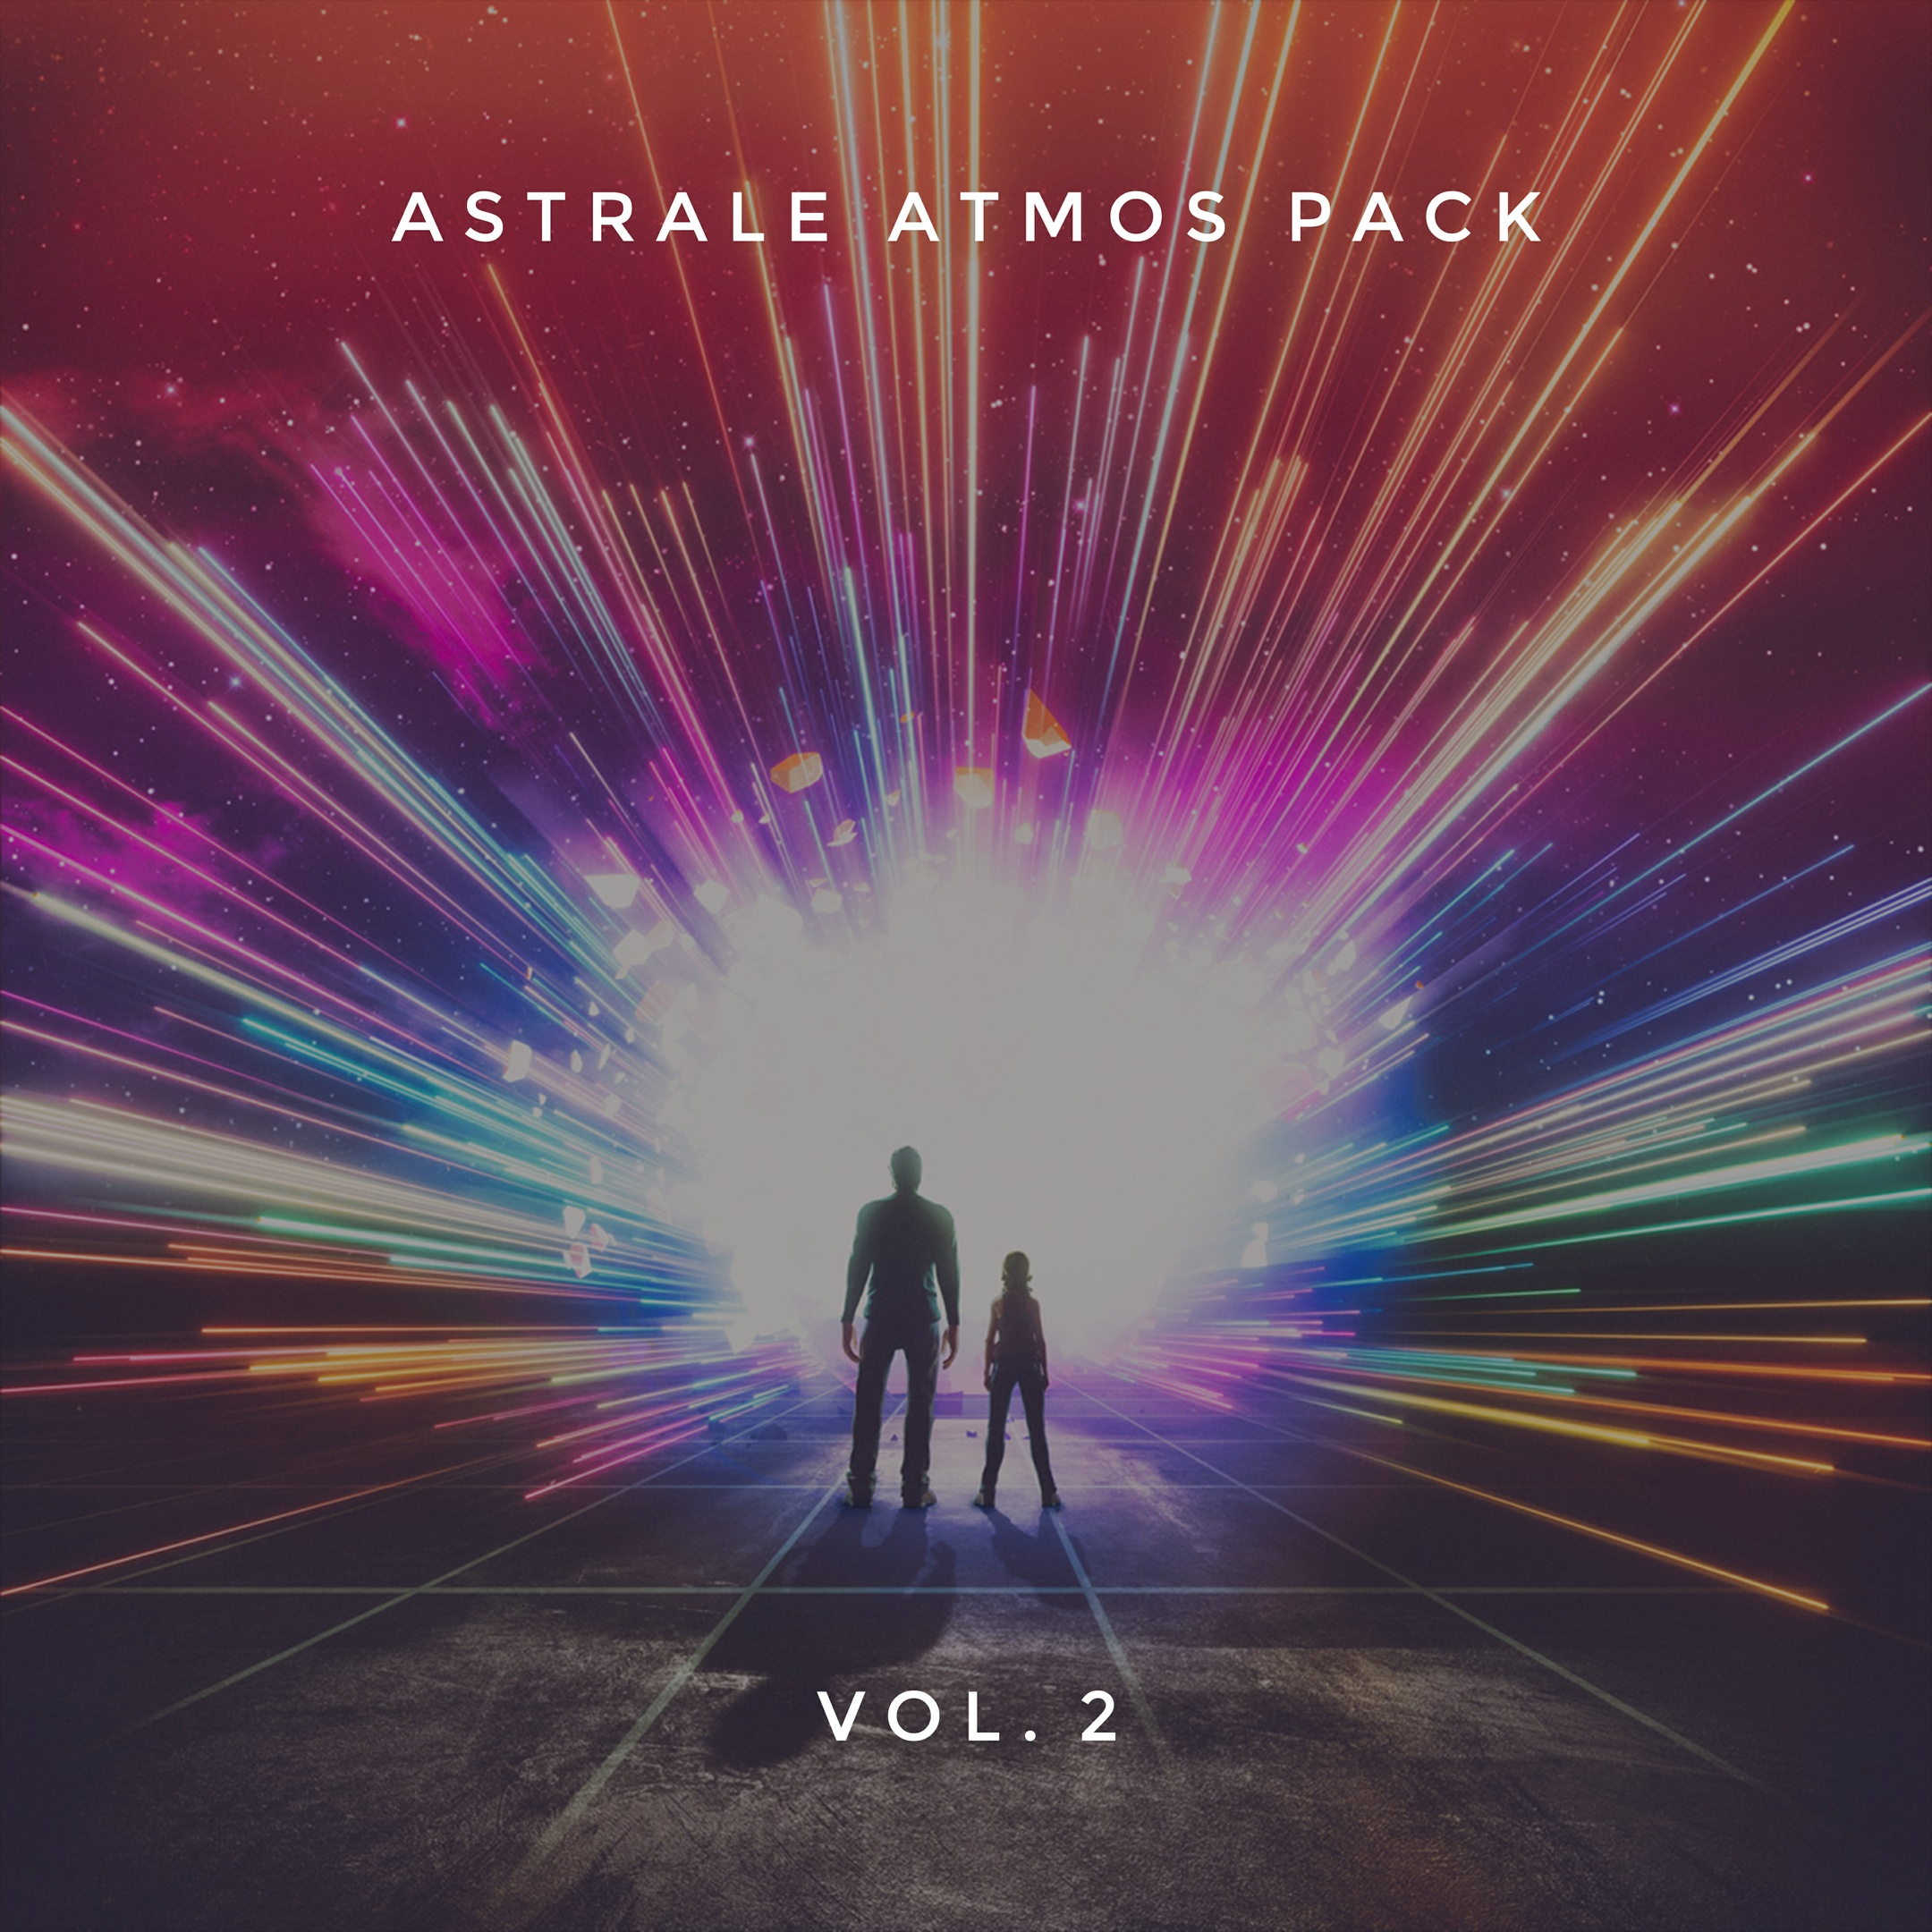 Astrale Atmos Pack Vol. 2